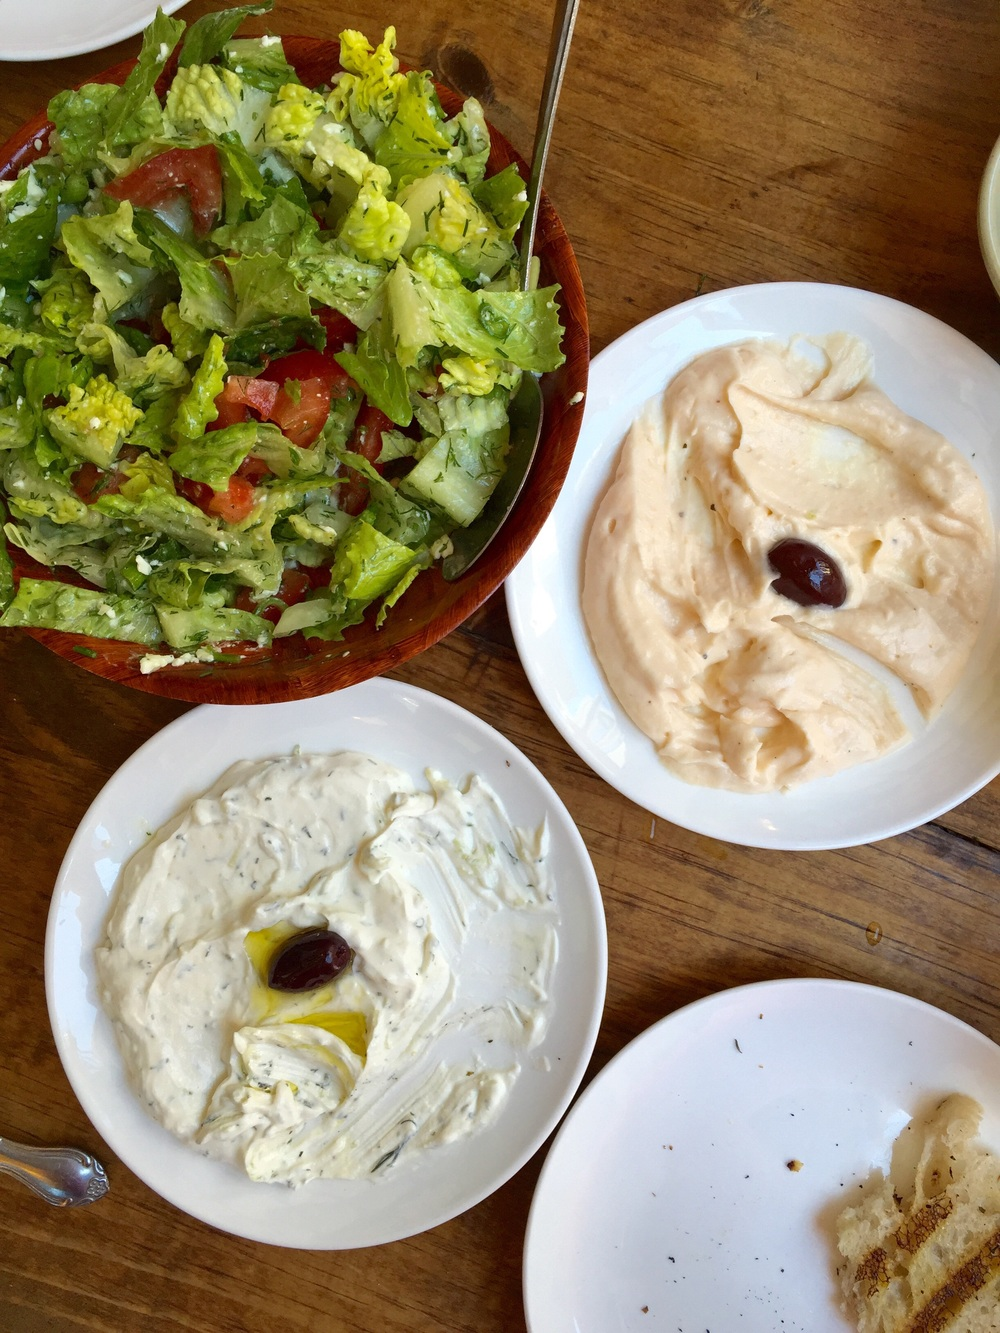 KiKi's  in Chinatown... Mediterranean food, adorable little space. By far, one of our favorite places in NYC. Pictured: one of our salads, roe dip, and a tzatziki dip!